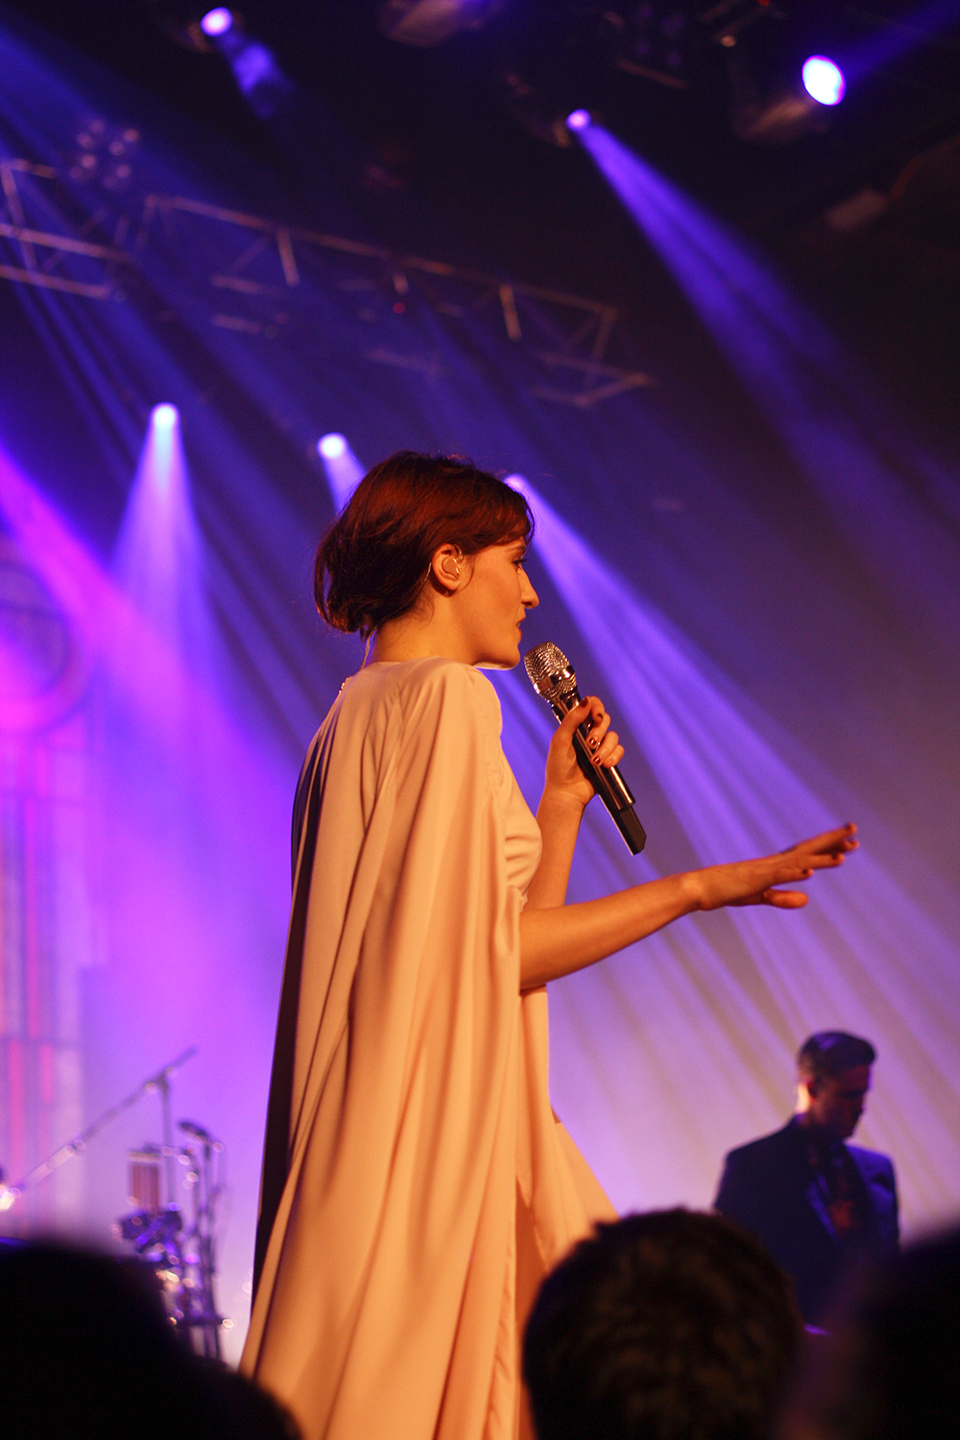 concert-florence-machine-paris-18